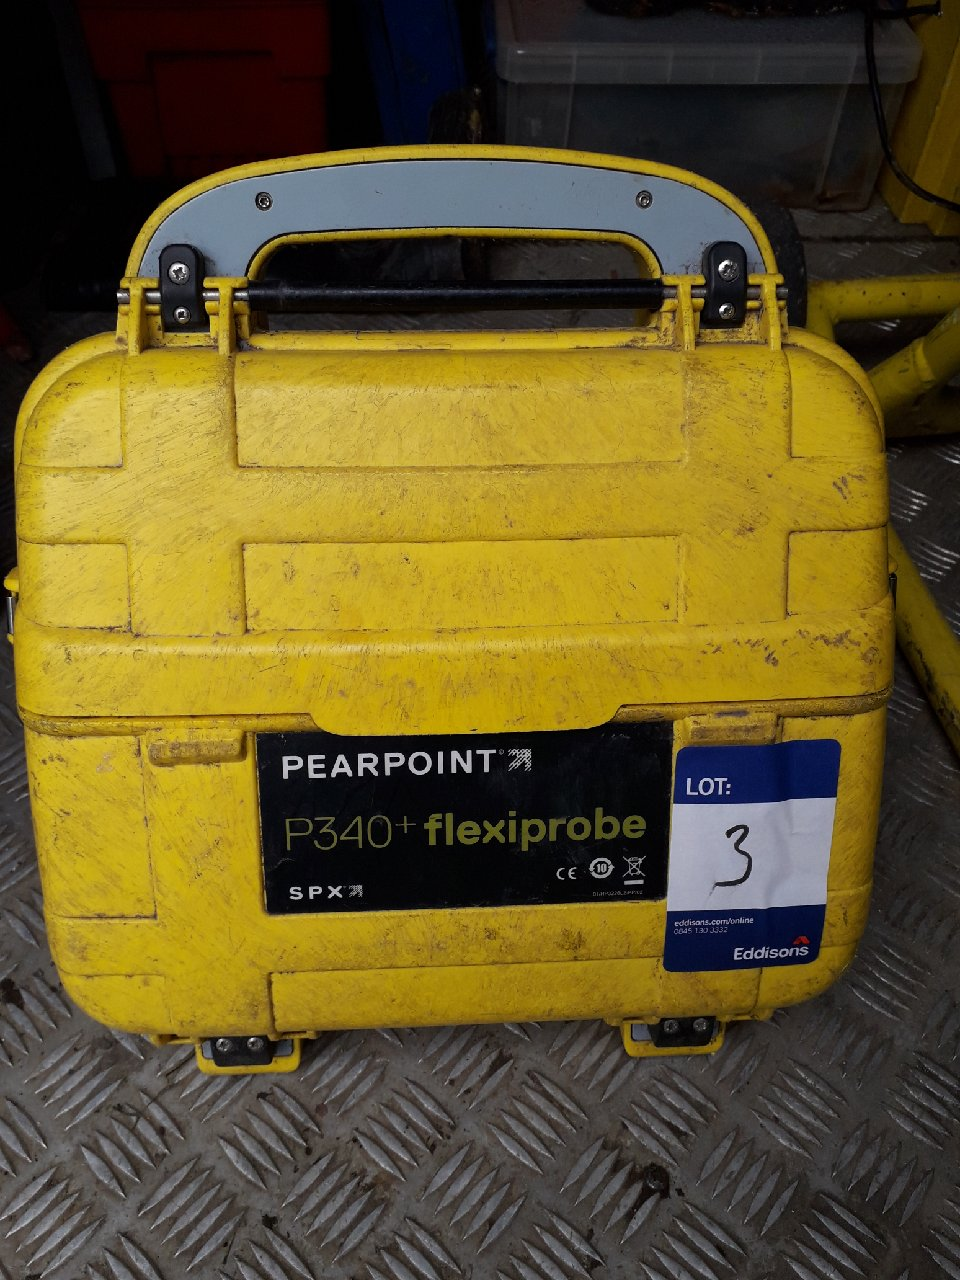 Lot 3 - Pearpoint P343 Flexiproble Reel with P340 flexiprobe CCTV monitor and Pearpoint tool bag with